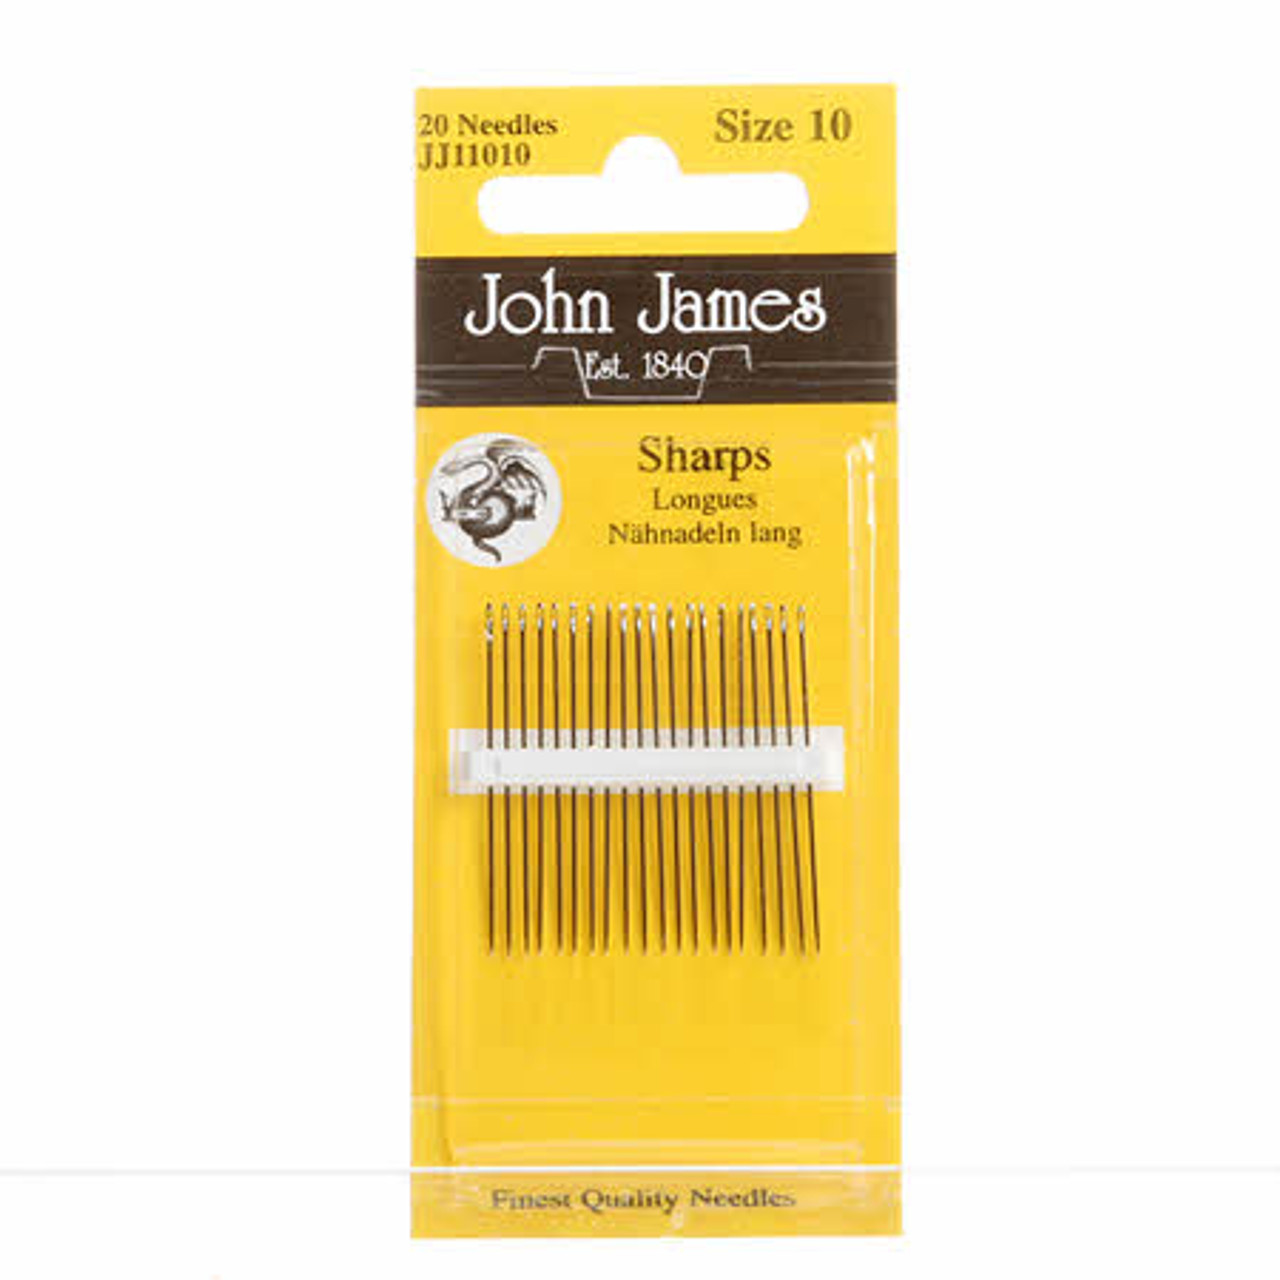 20 x John James Needles Sharps Size 5